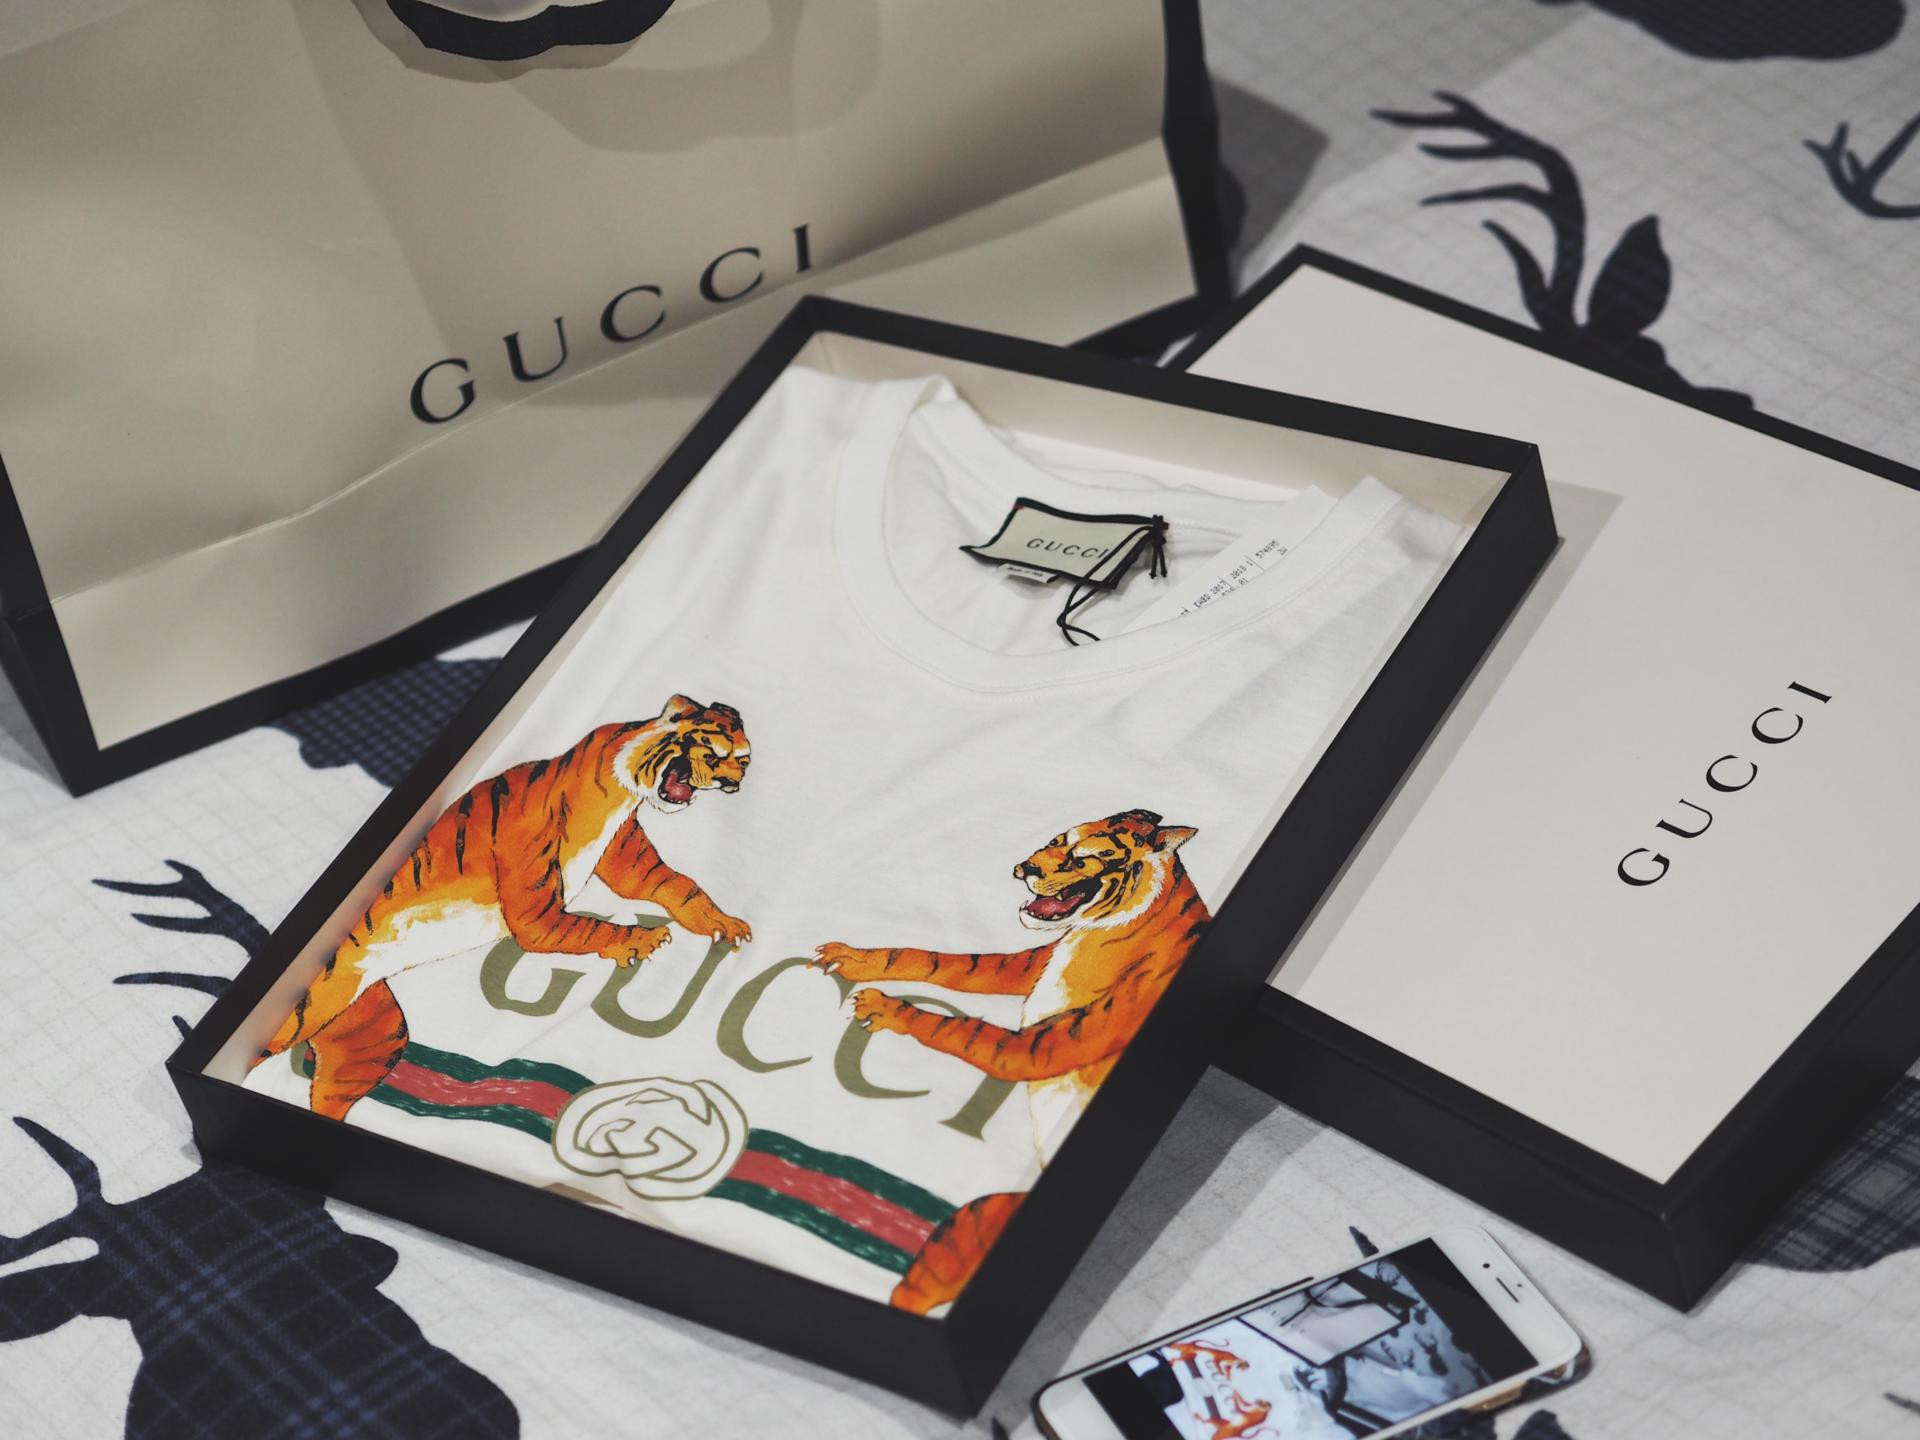 My first ever Gucci purchase!